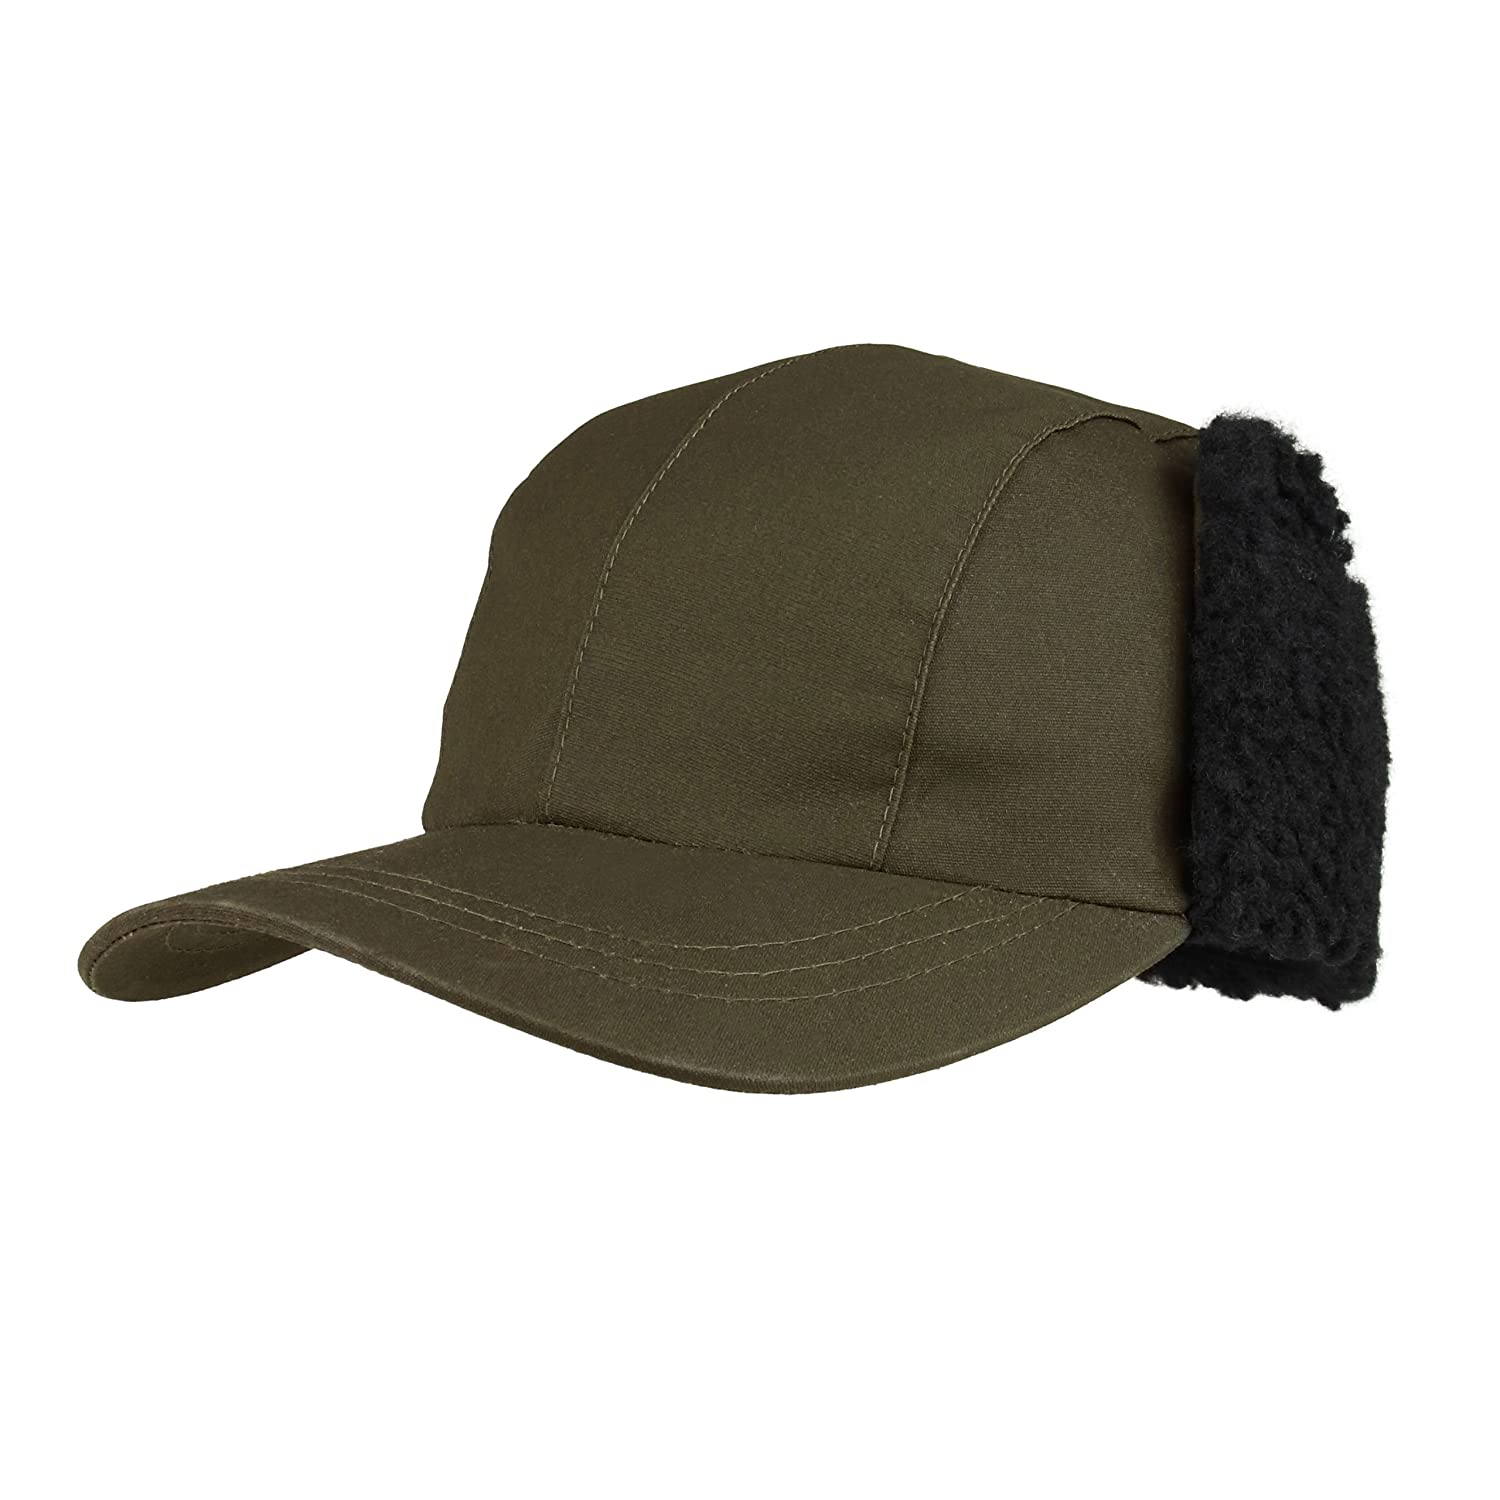 9144b6f7003dff Juniper Unisex Waxed Cotton Canvas Bucket Hat-J9702 - Olive - Large:  Amazon.ca: Sports & Outdoors